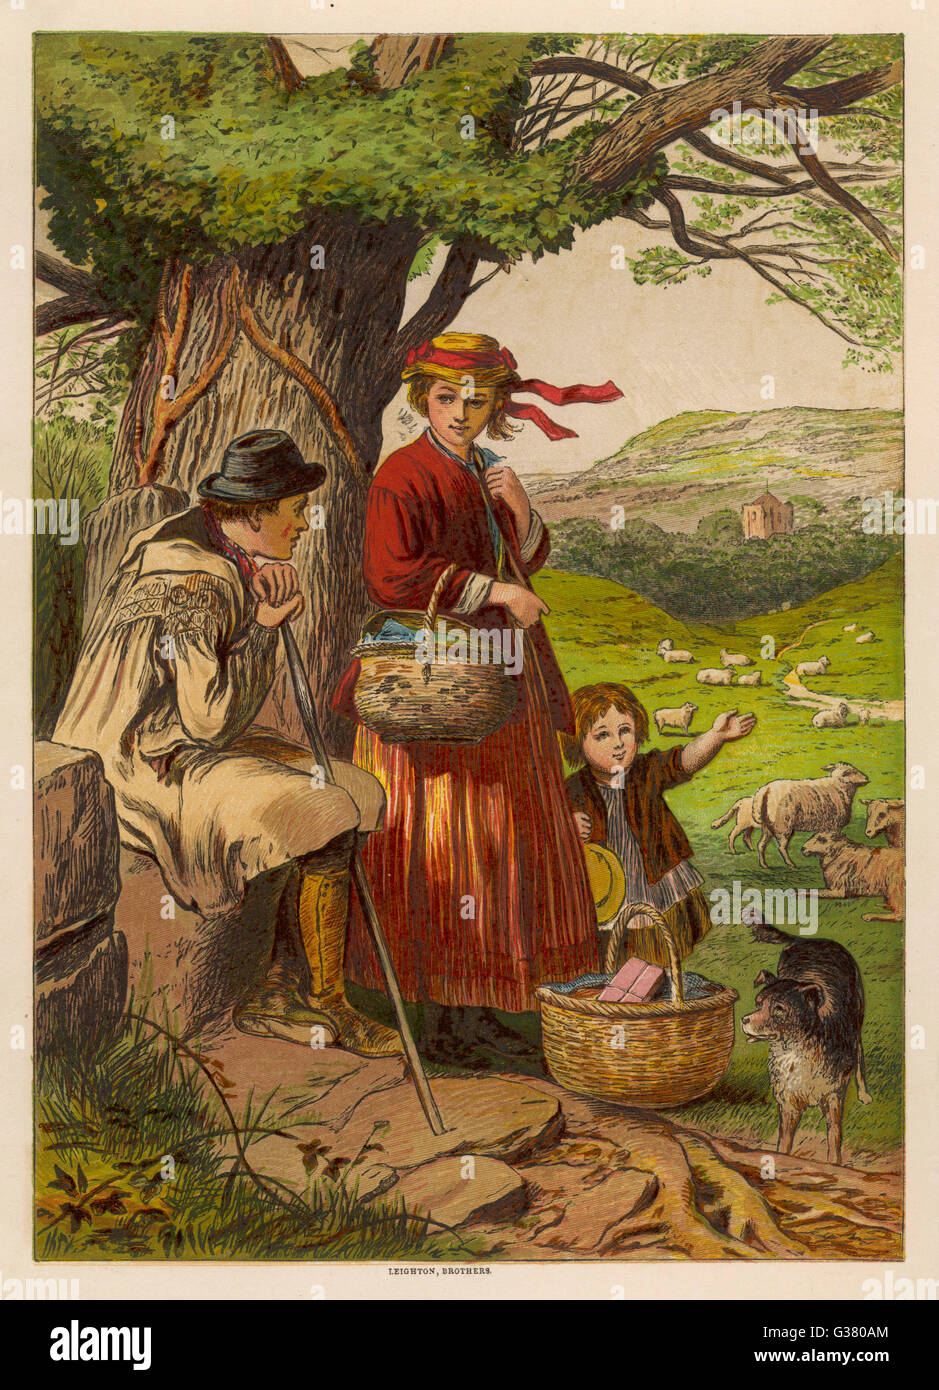 Country Folk aller au marché Date: 1869 Photo Stock